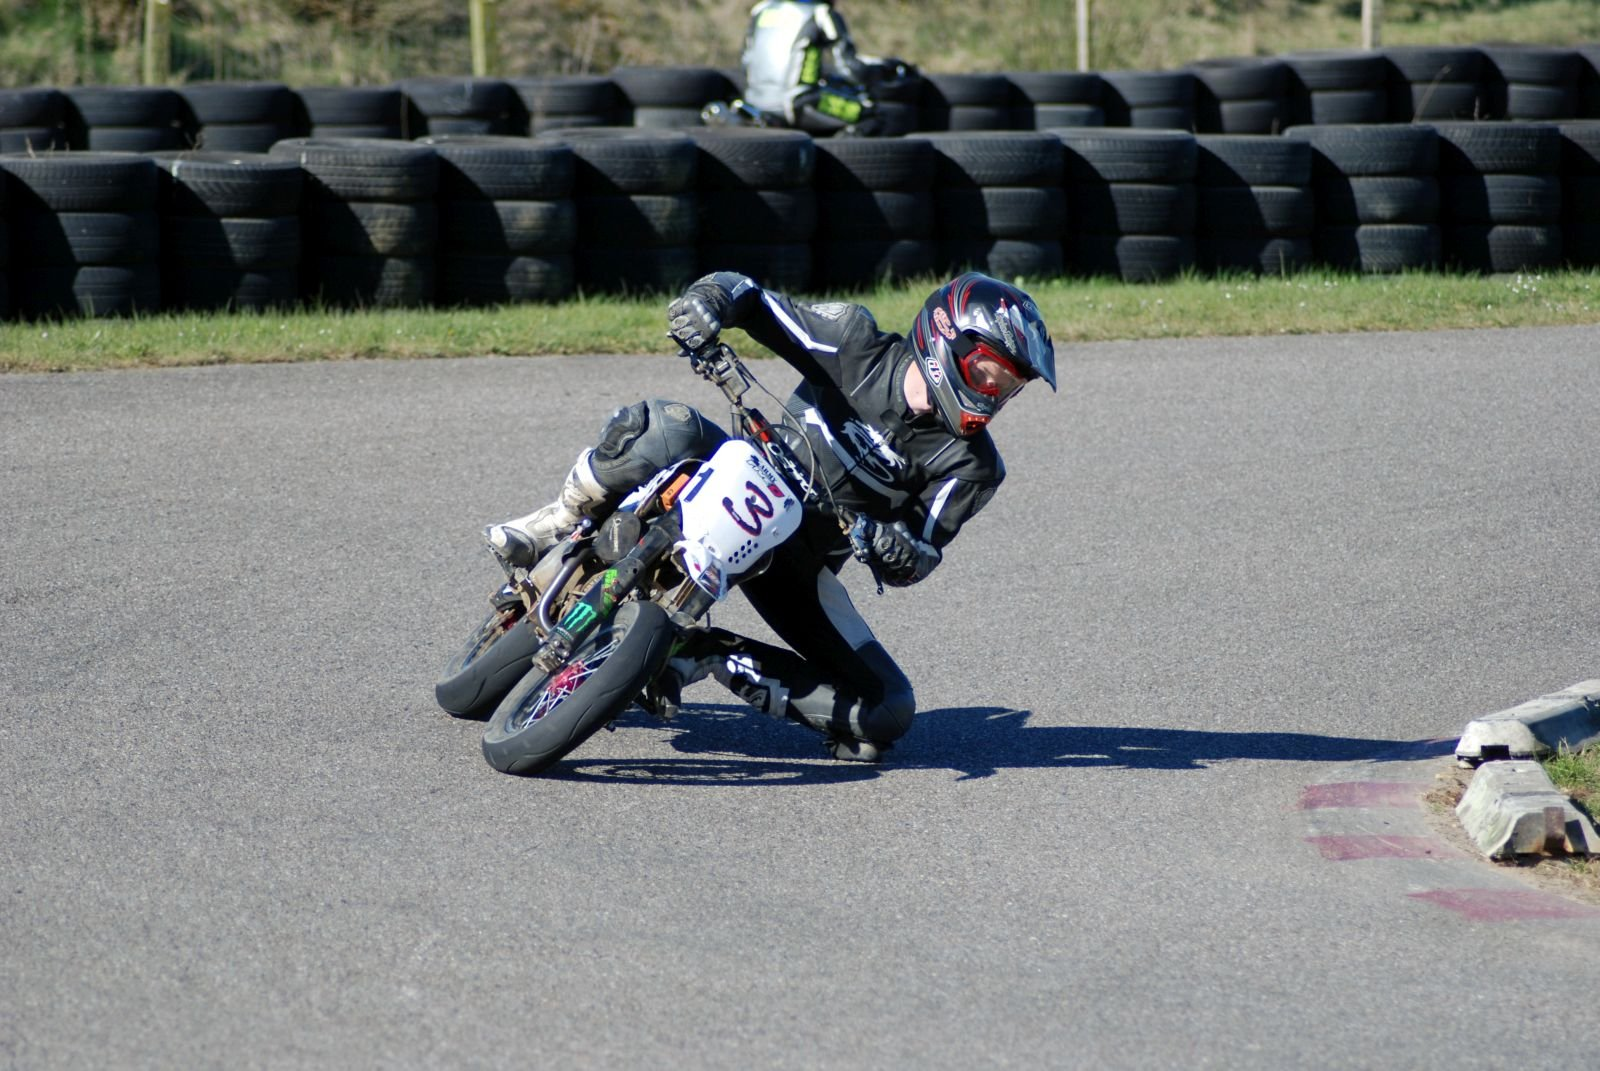 Supermotard_DM_ALS_2009 (13)